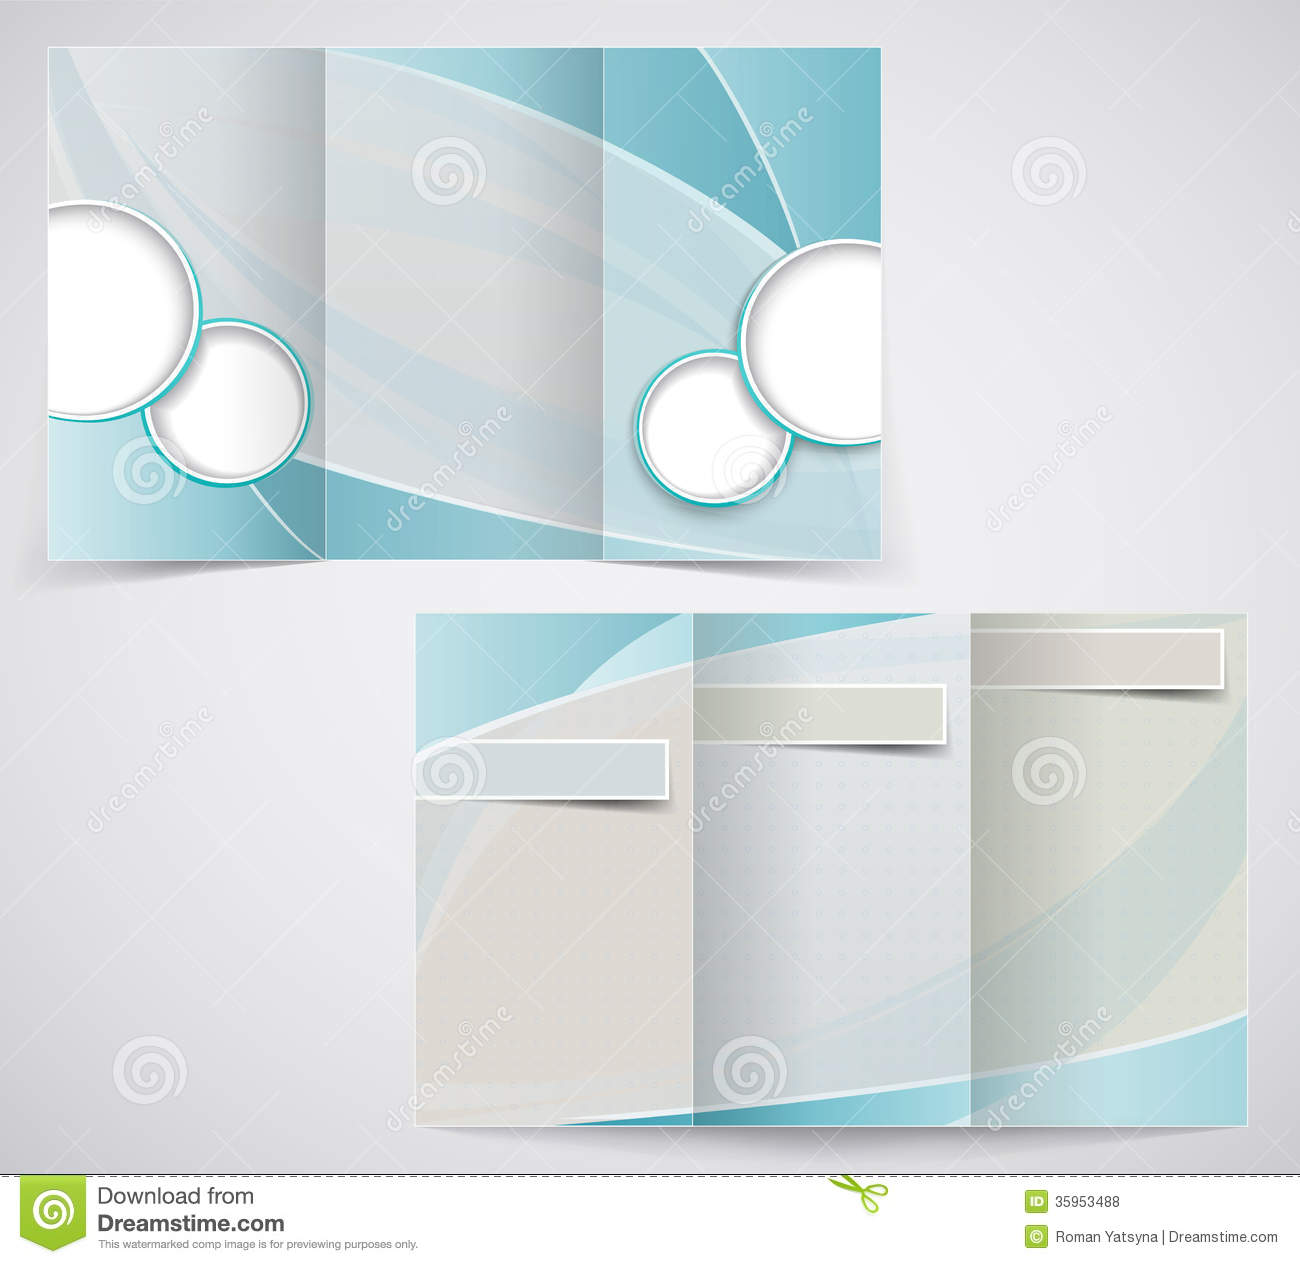 Tri-fold Business Brochure Template, Vector Blue D Royalty Free ...